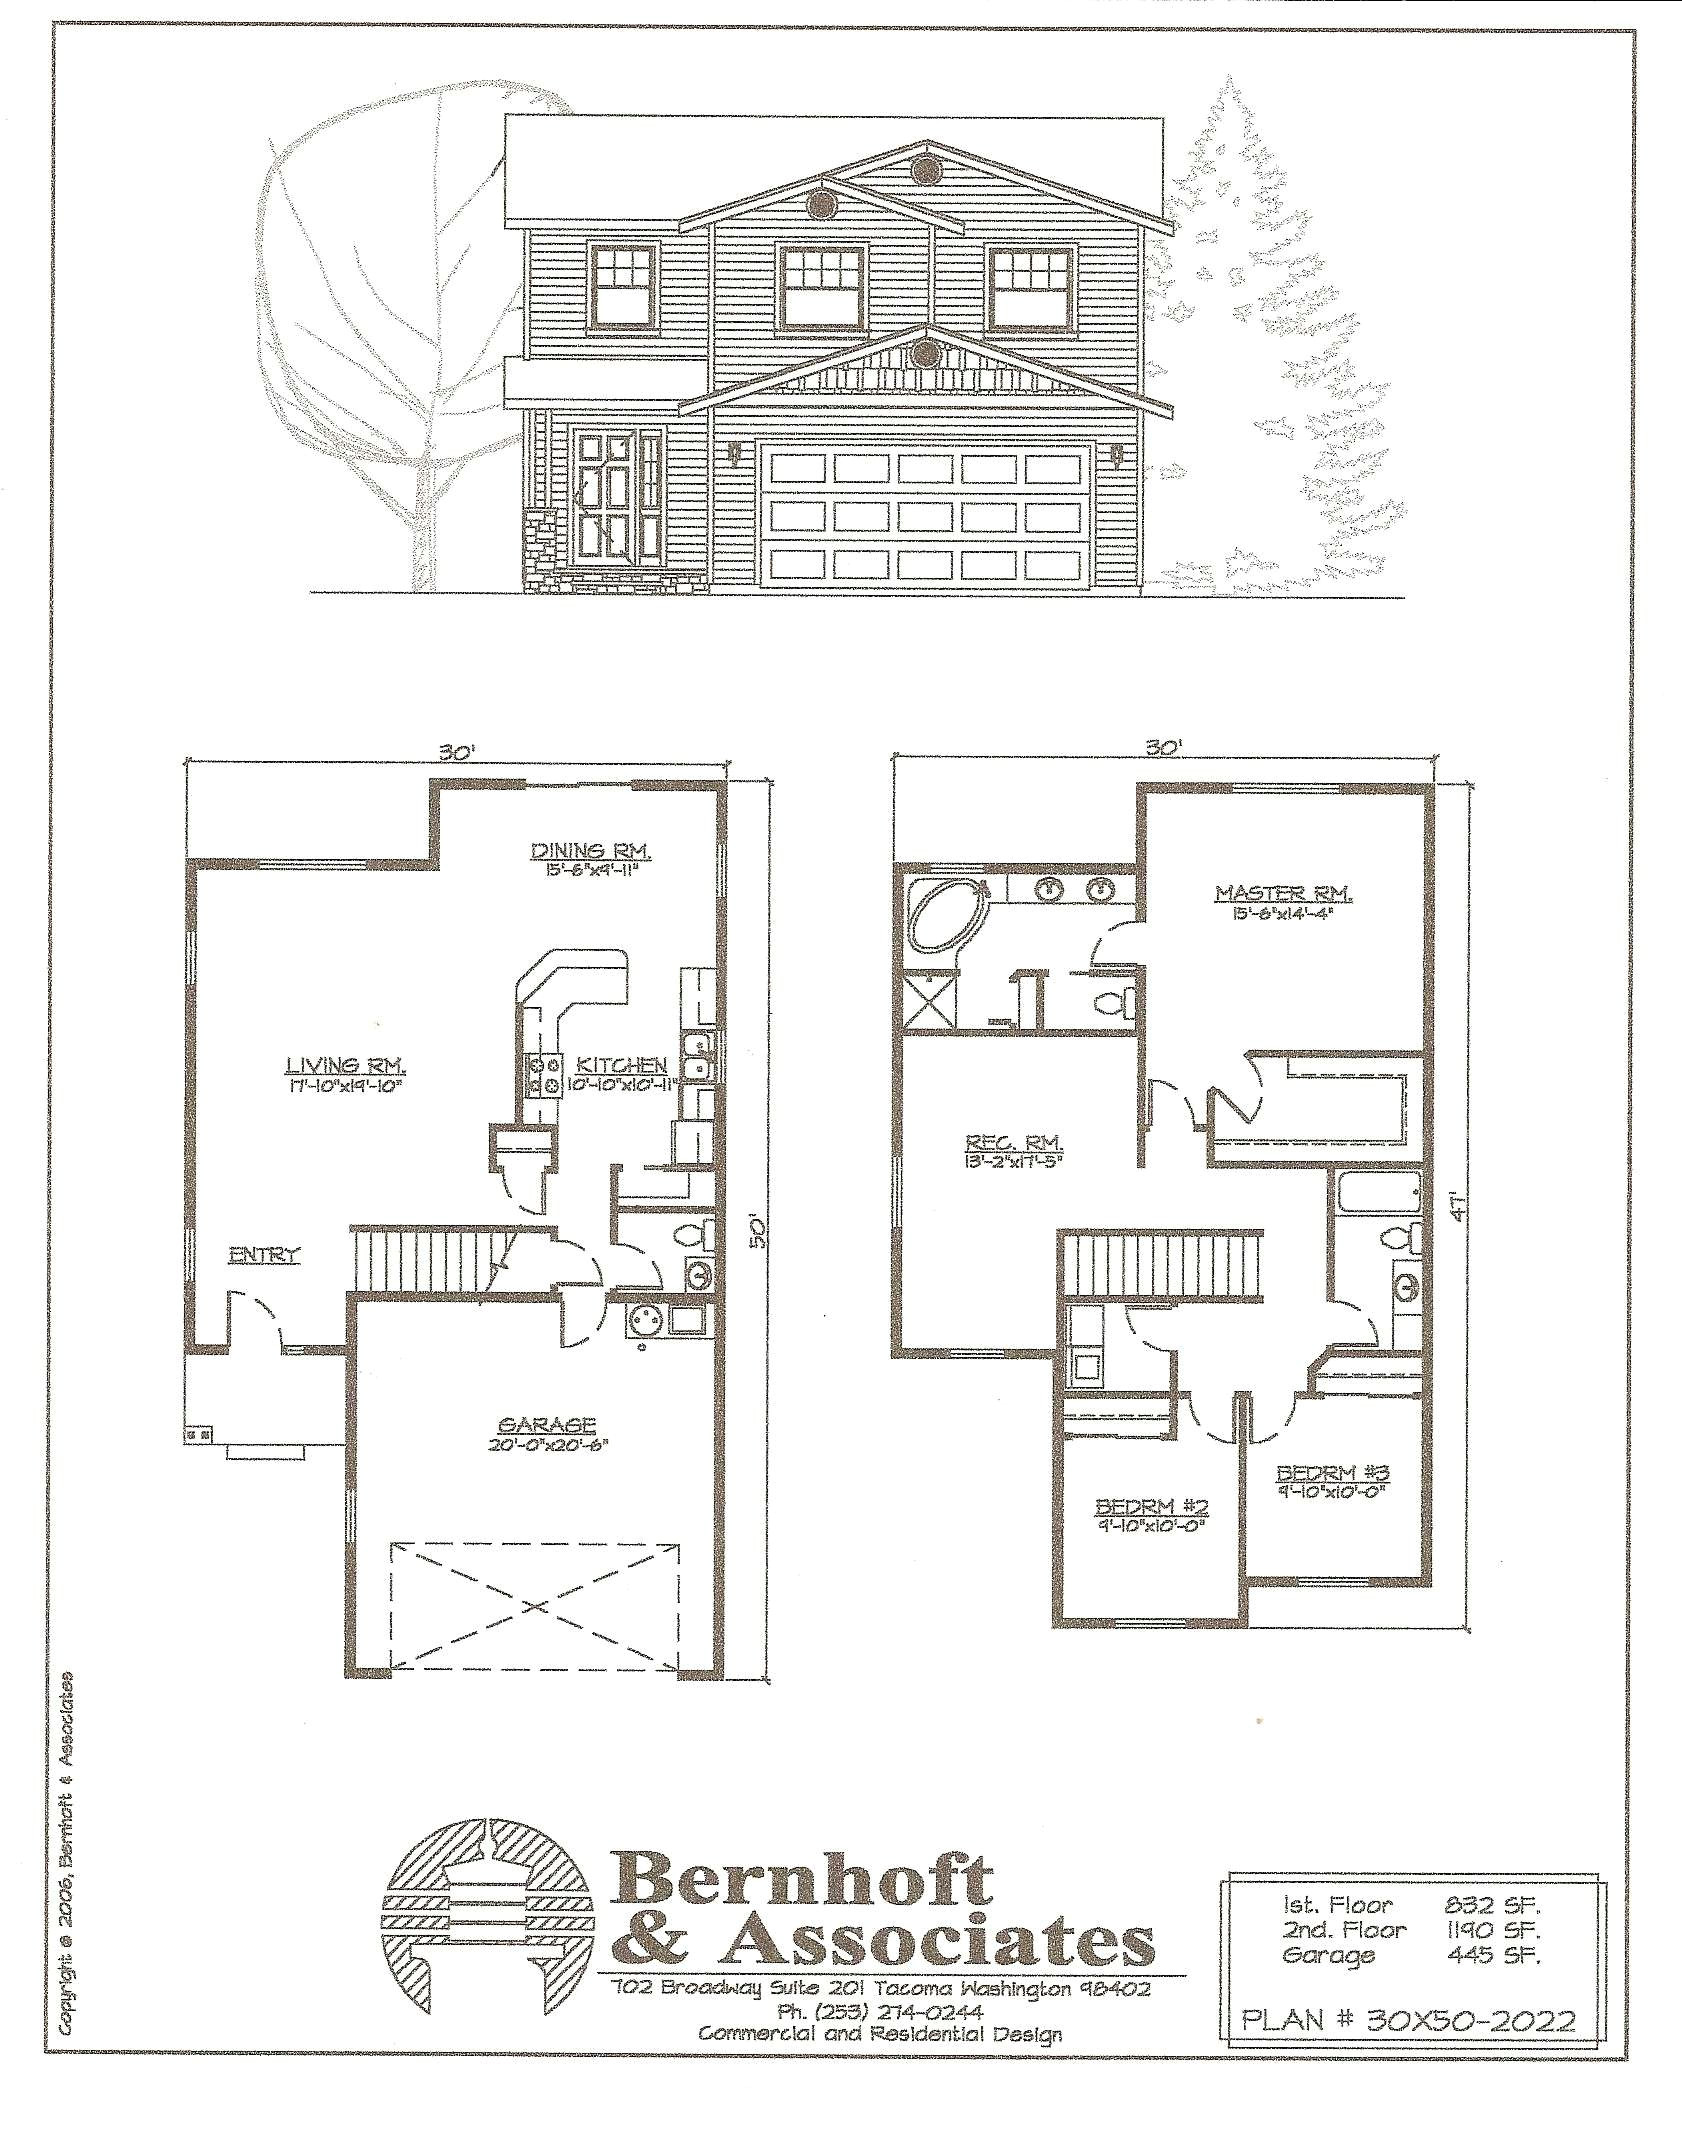 30 section drawing architecture latest architecture house plans awesome 15 unique architect house plans